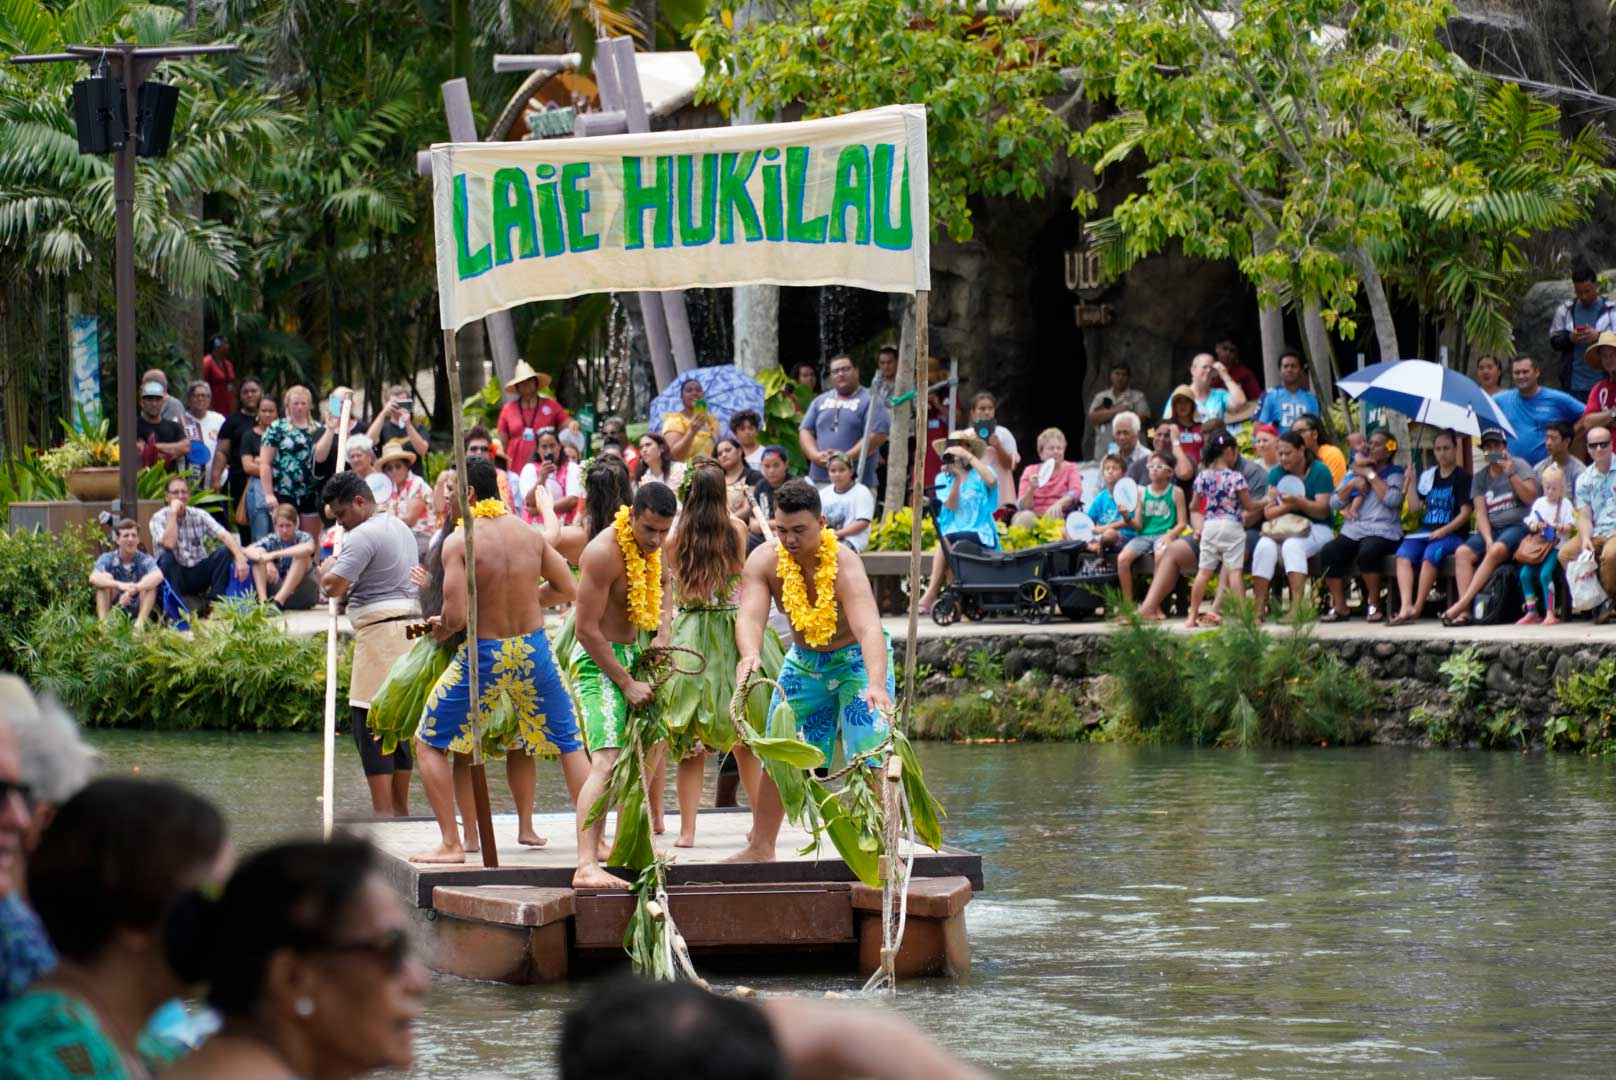 In addition to showcasing various Polynesian cultures, Huki also shares the unique history of Laie and the beginning of the Polynesian Cultural Center.